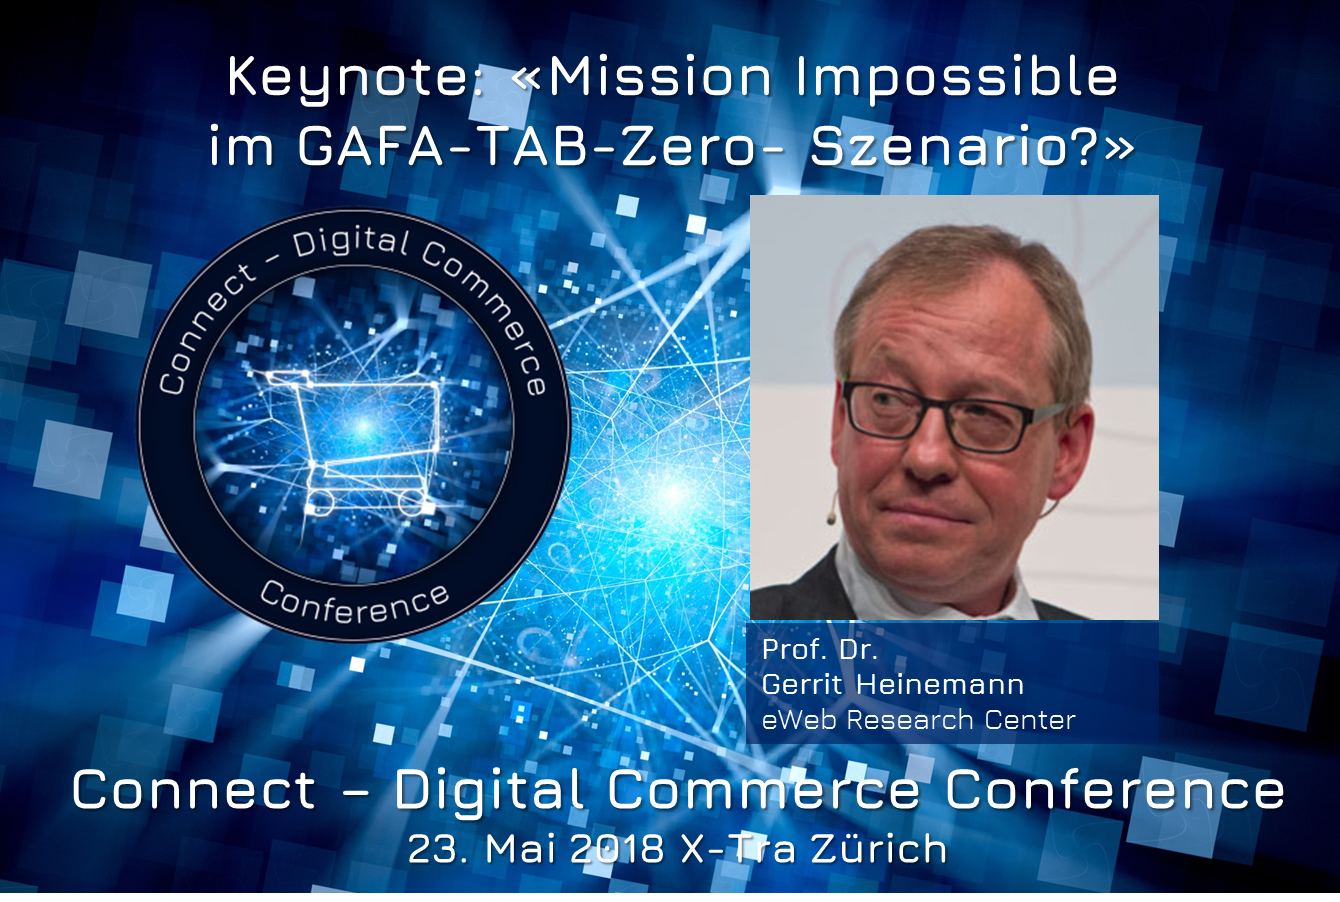 Eröffnungs-Keynote Connect - Digital Commerce Conference: Mission Impossible im GAFA-TAB-Zero- Szenario? Prof. Dr. Gerrit Heinemann